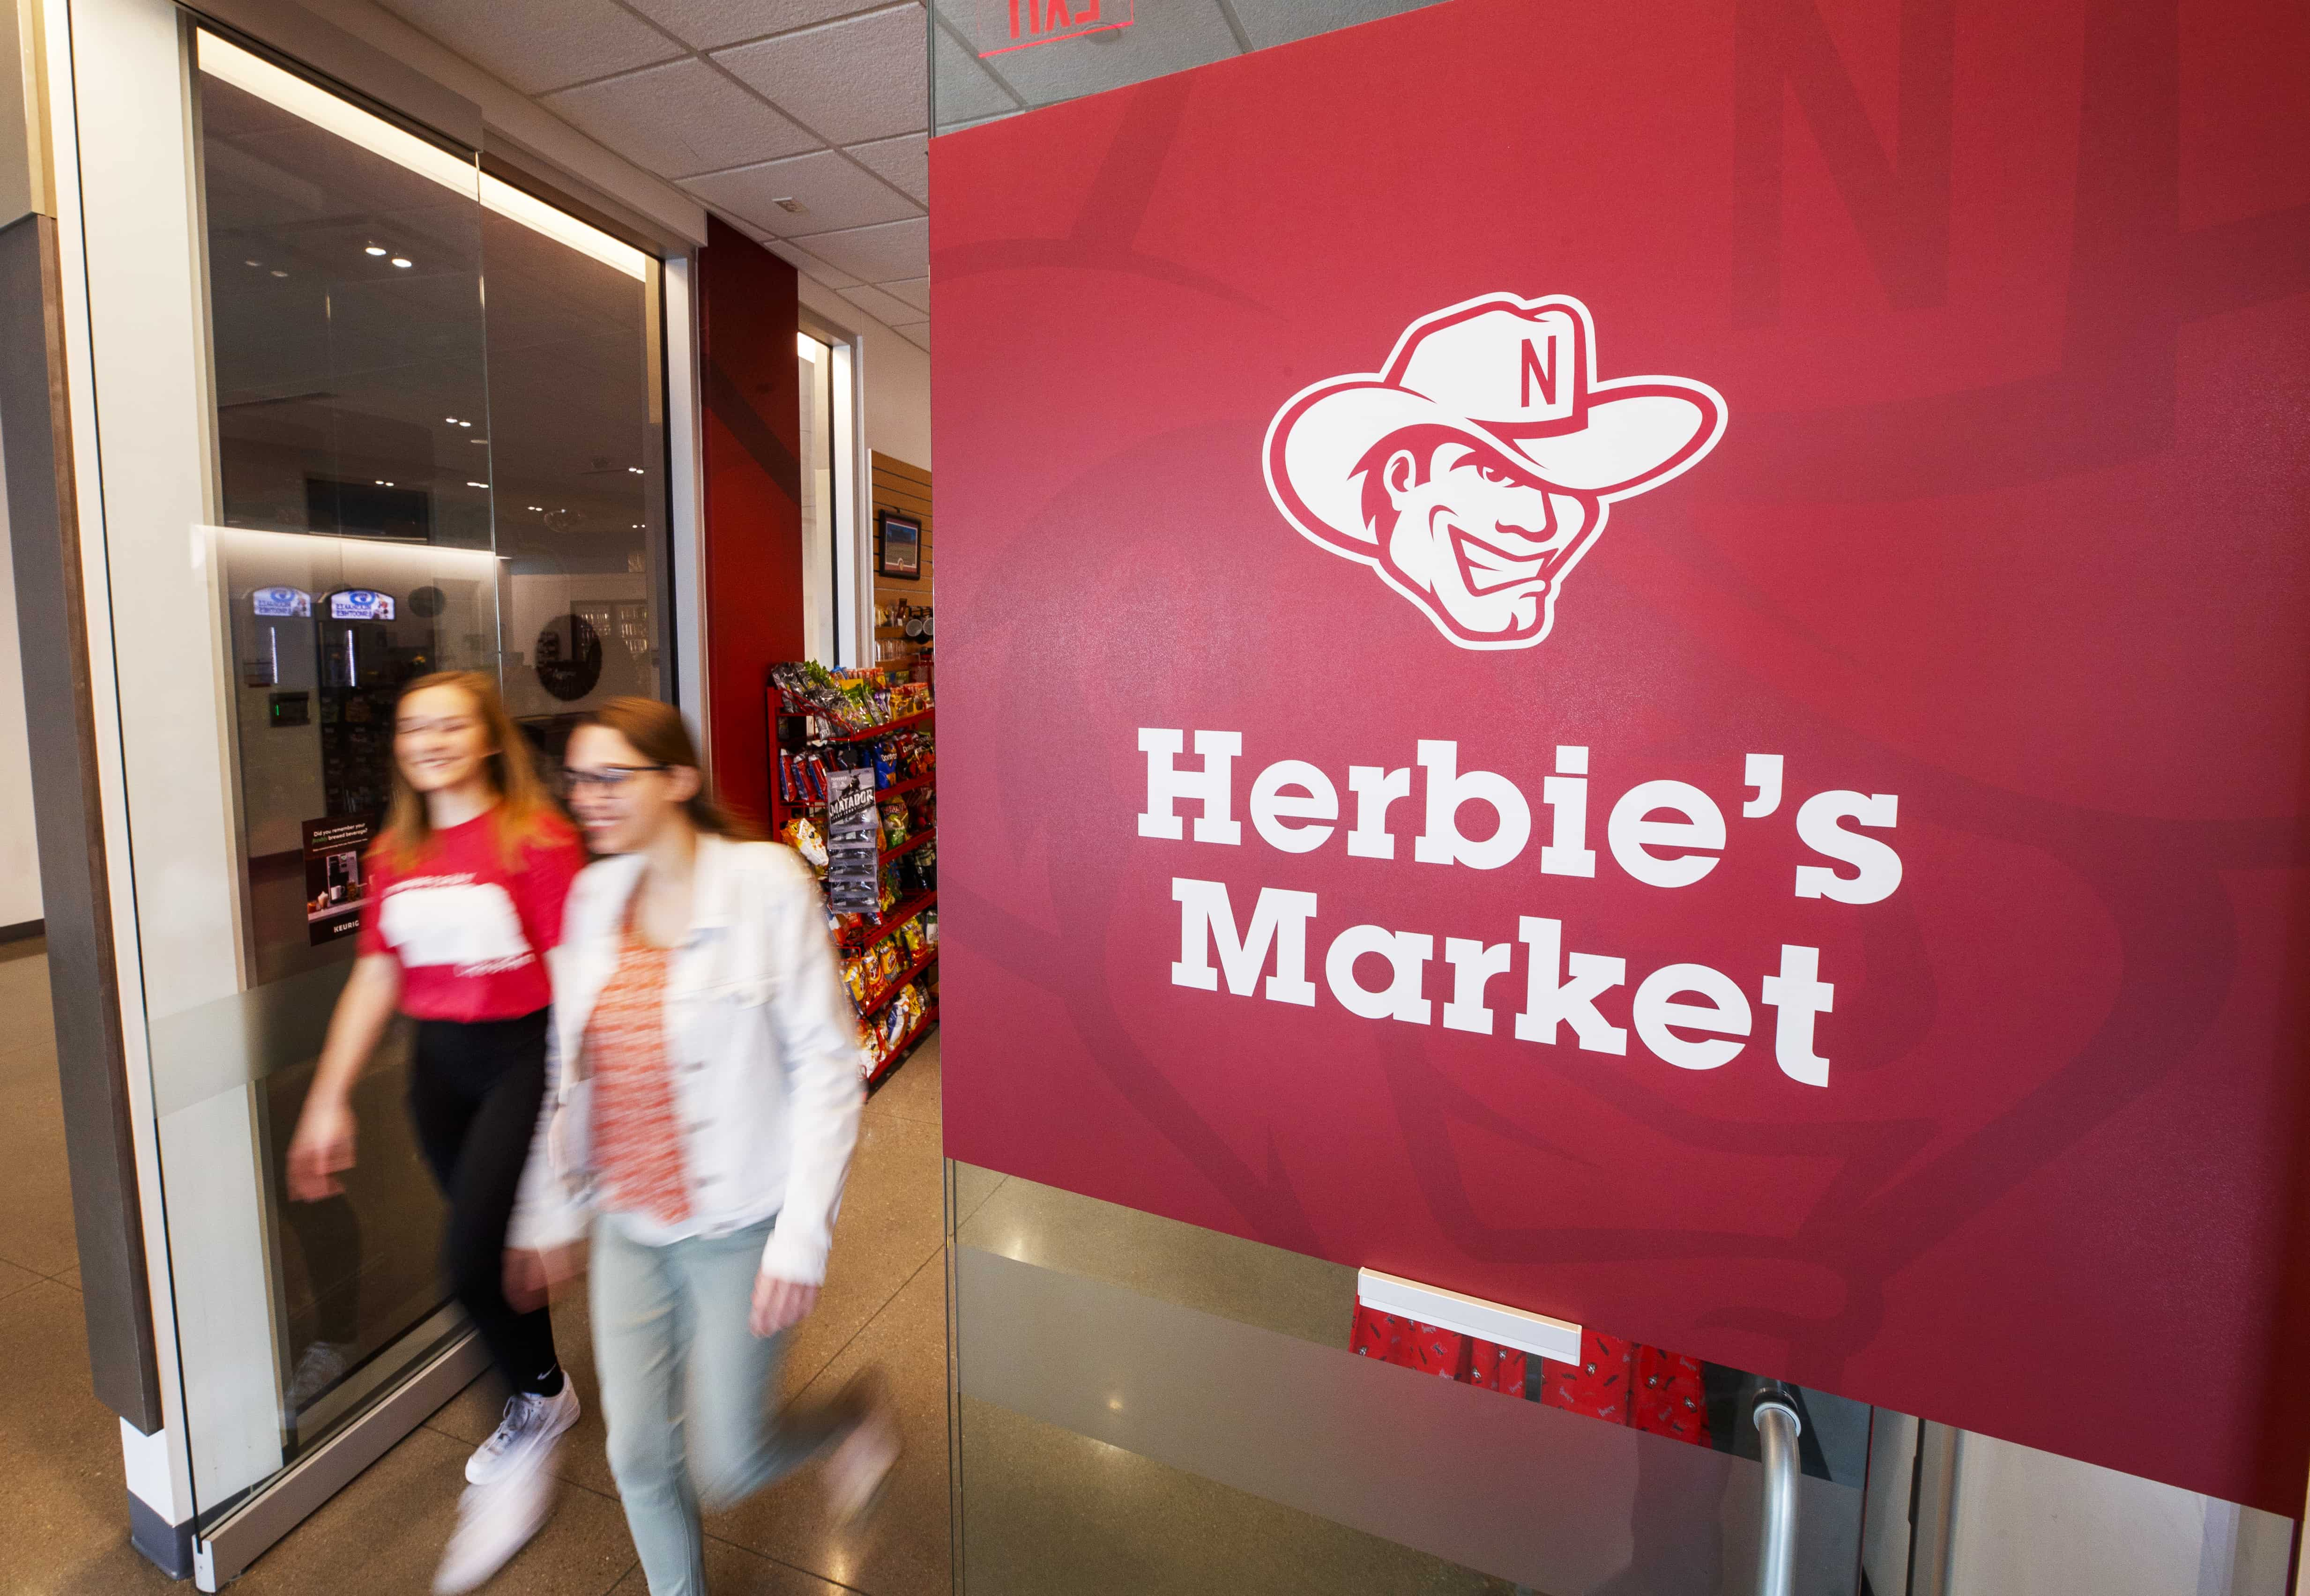 Herbie's Market at Cather